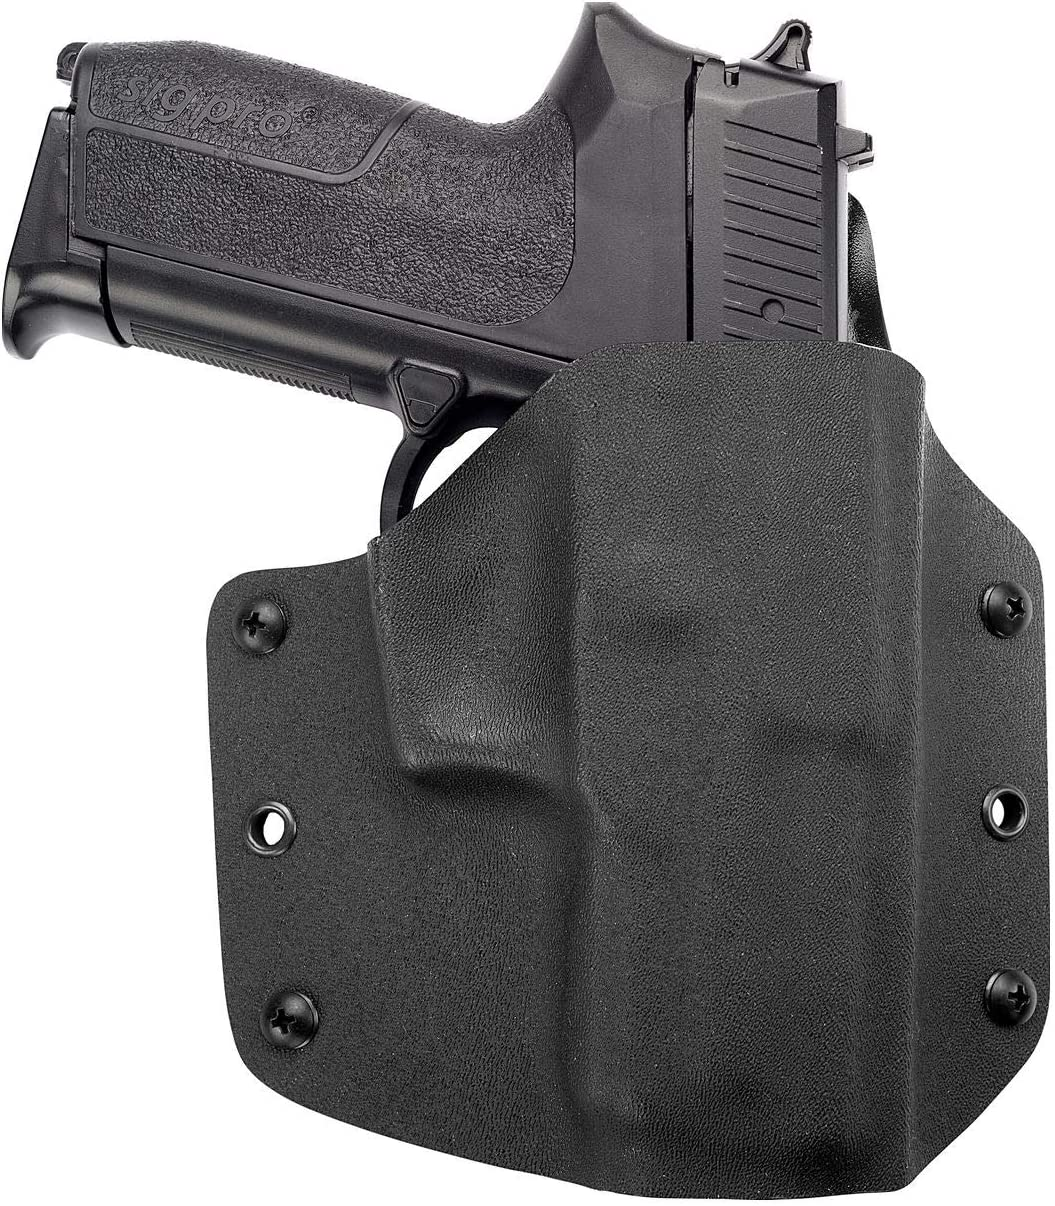 Craft Holsters Cabot Max 68% OFF Guns The Icon Holster Luxury 5